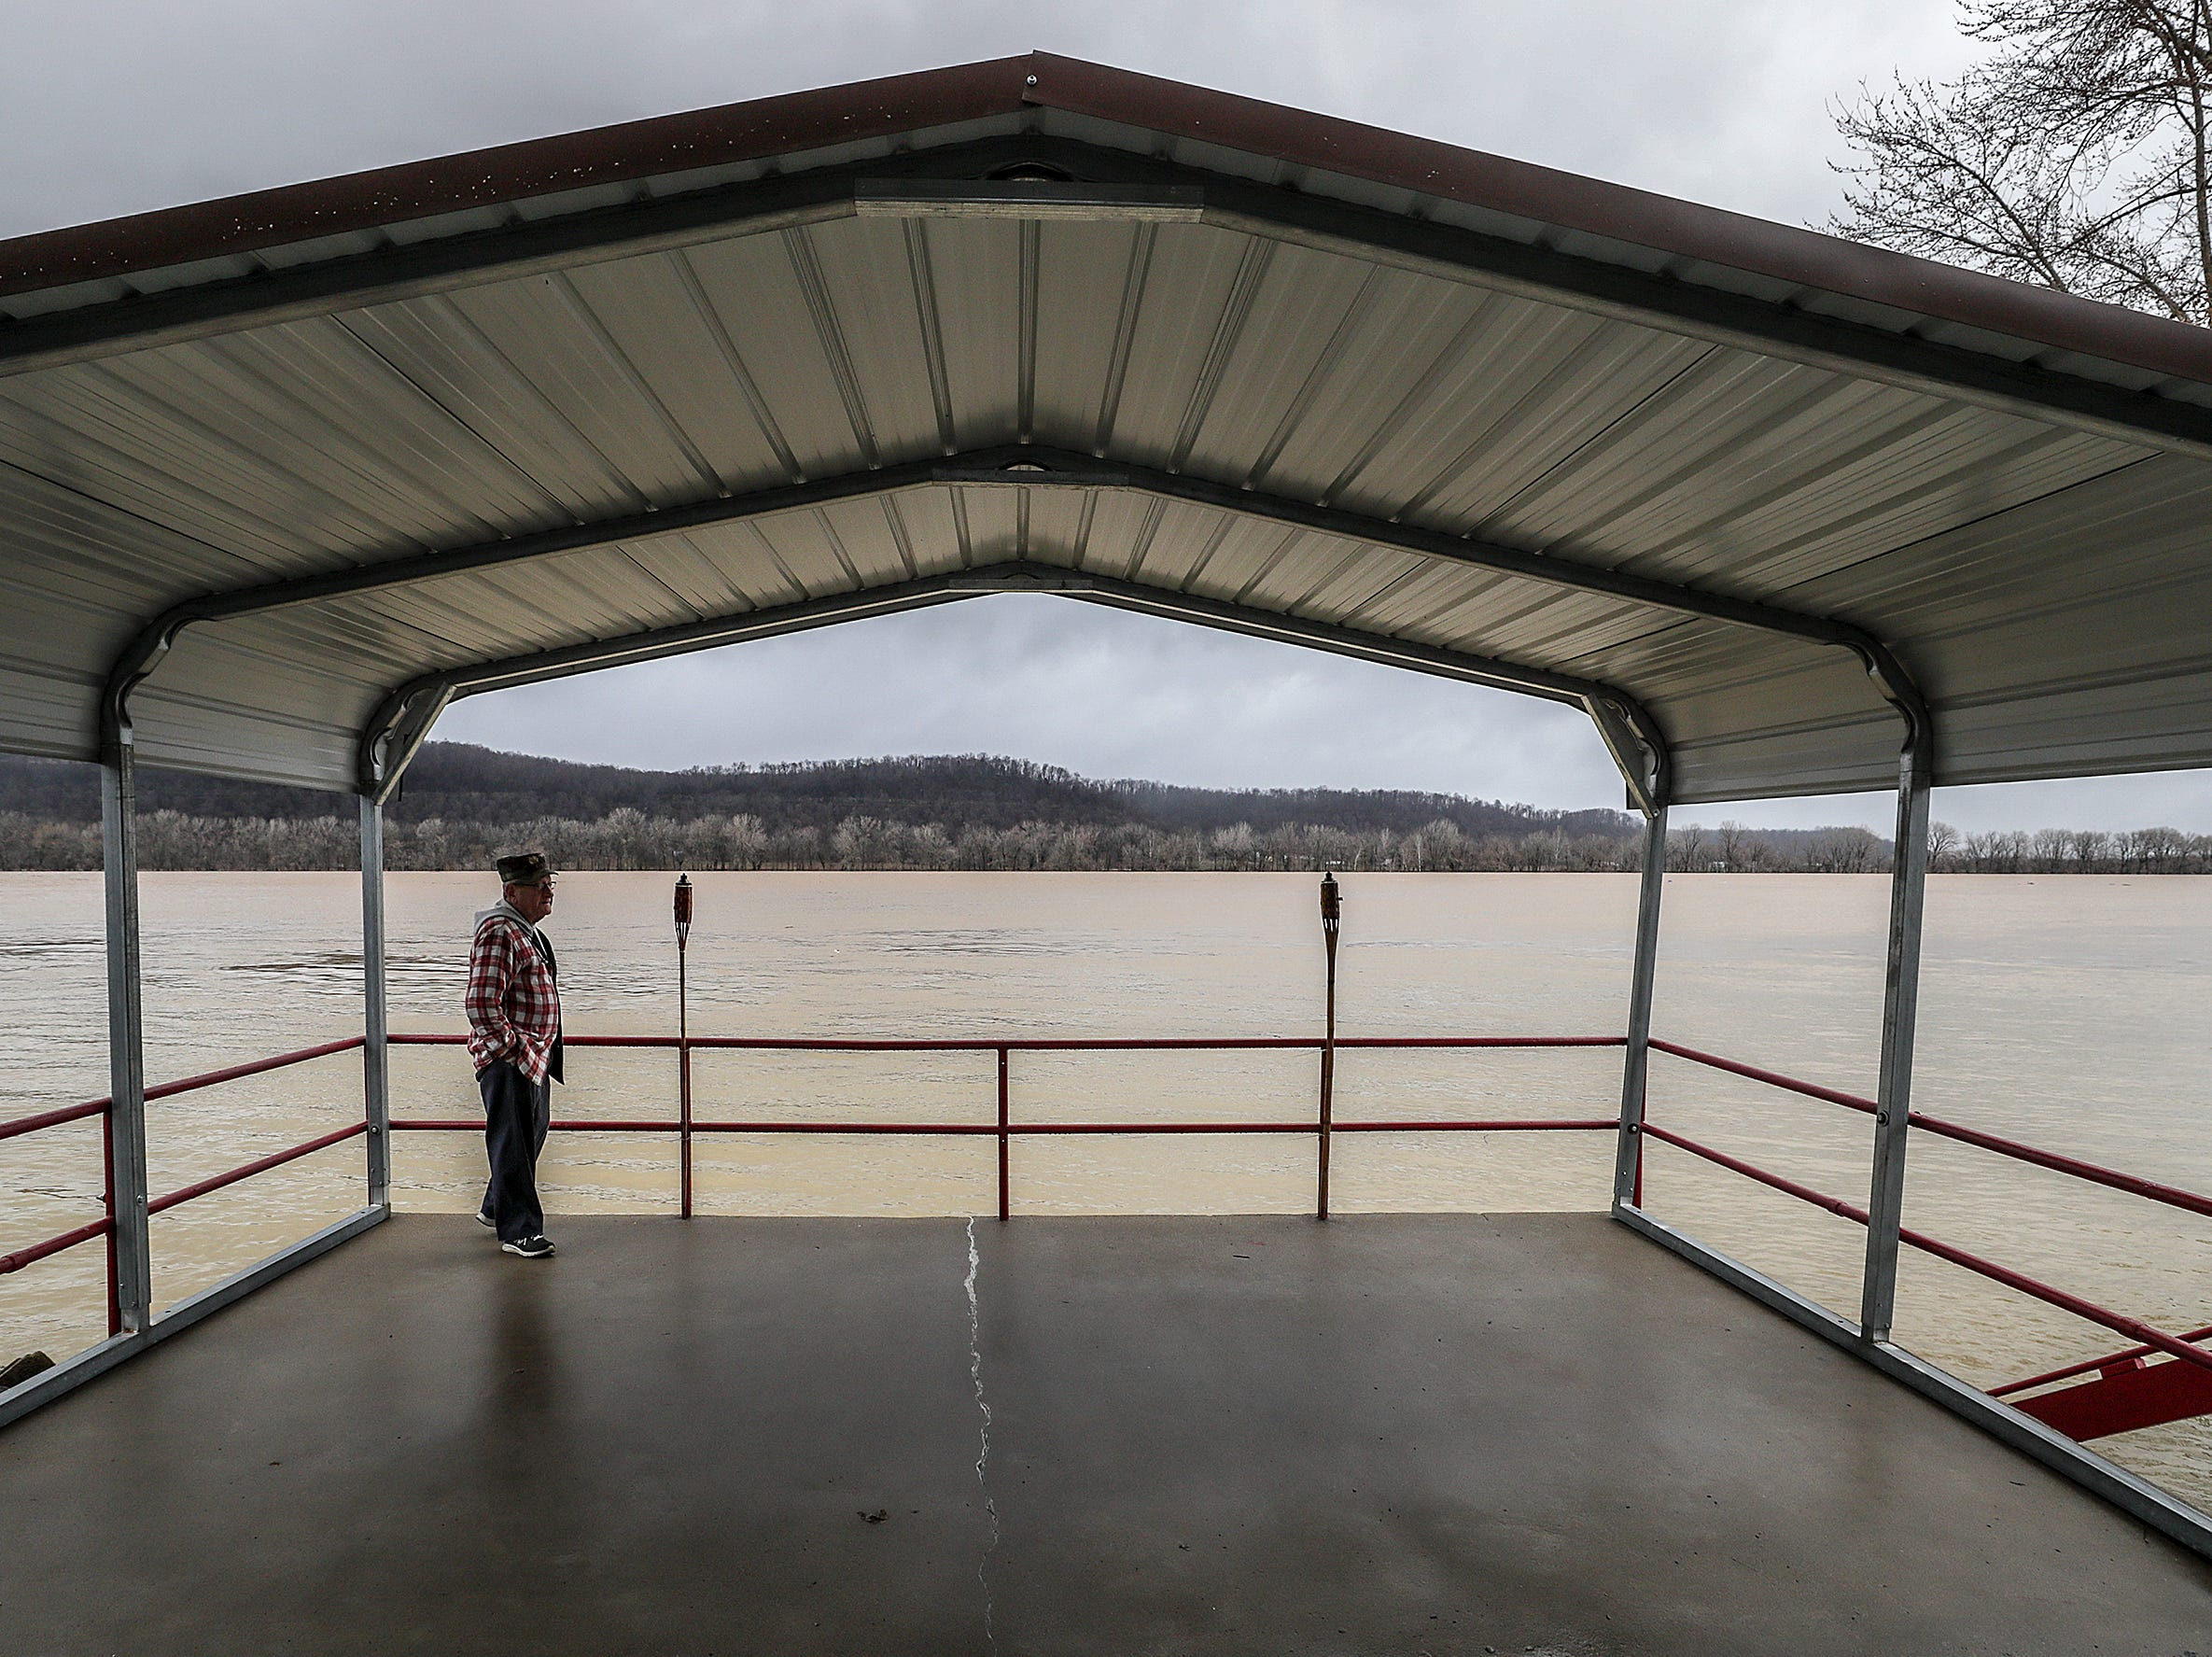 Long-time West Point resident Stan Madden looks out over an ever-encroaching Ohio River that will flood several homes in the small river town.February 12, 2019